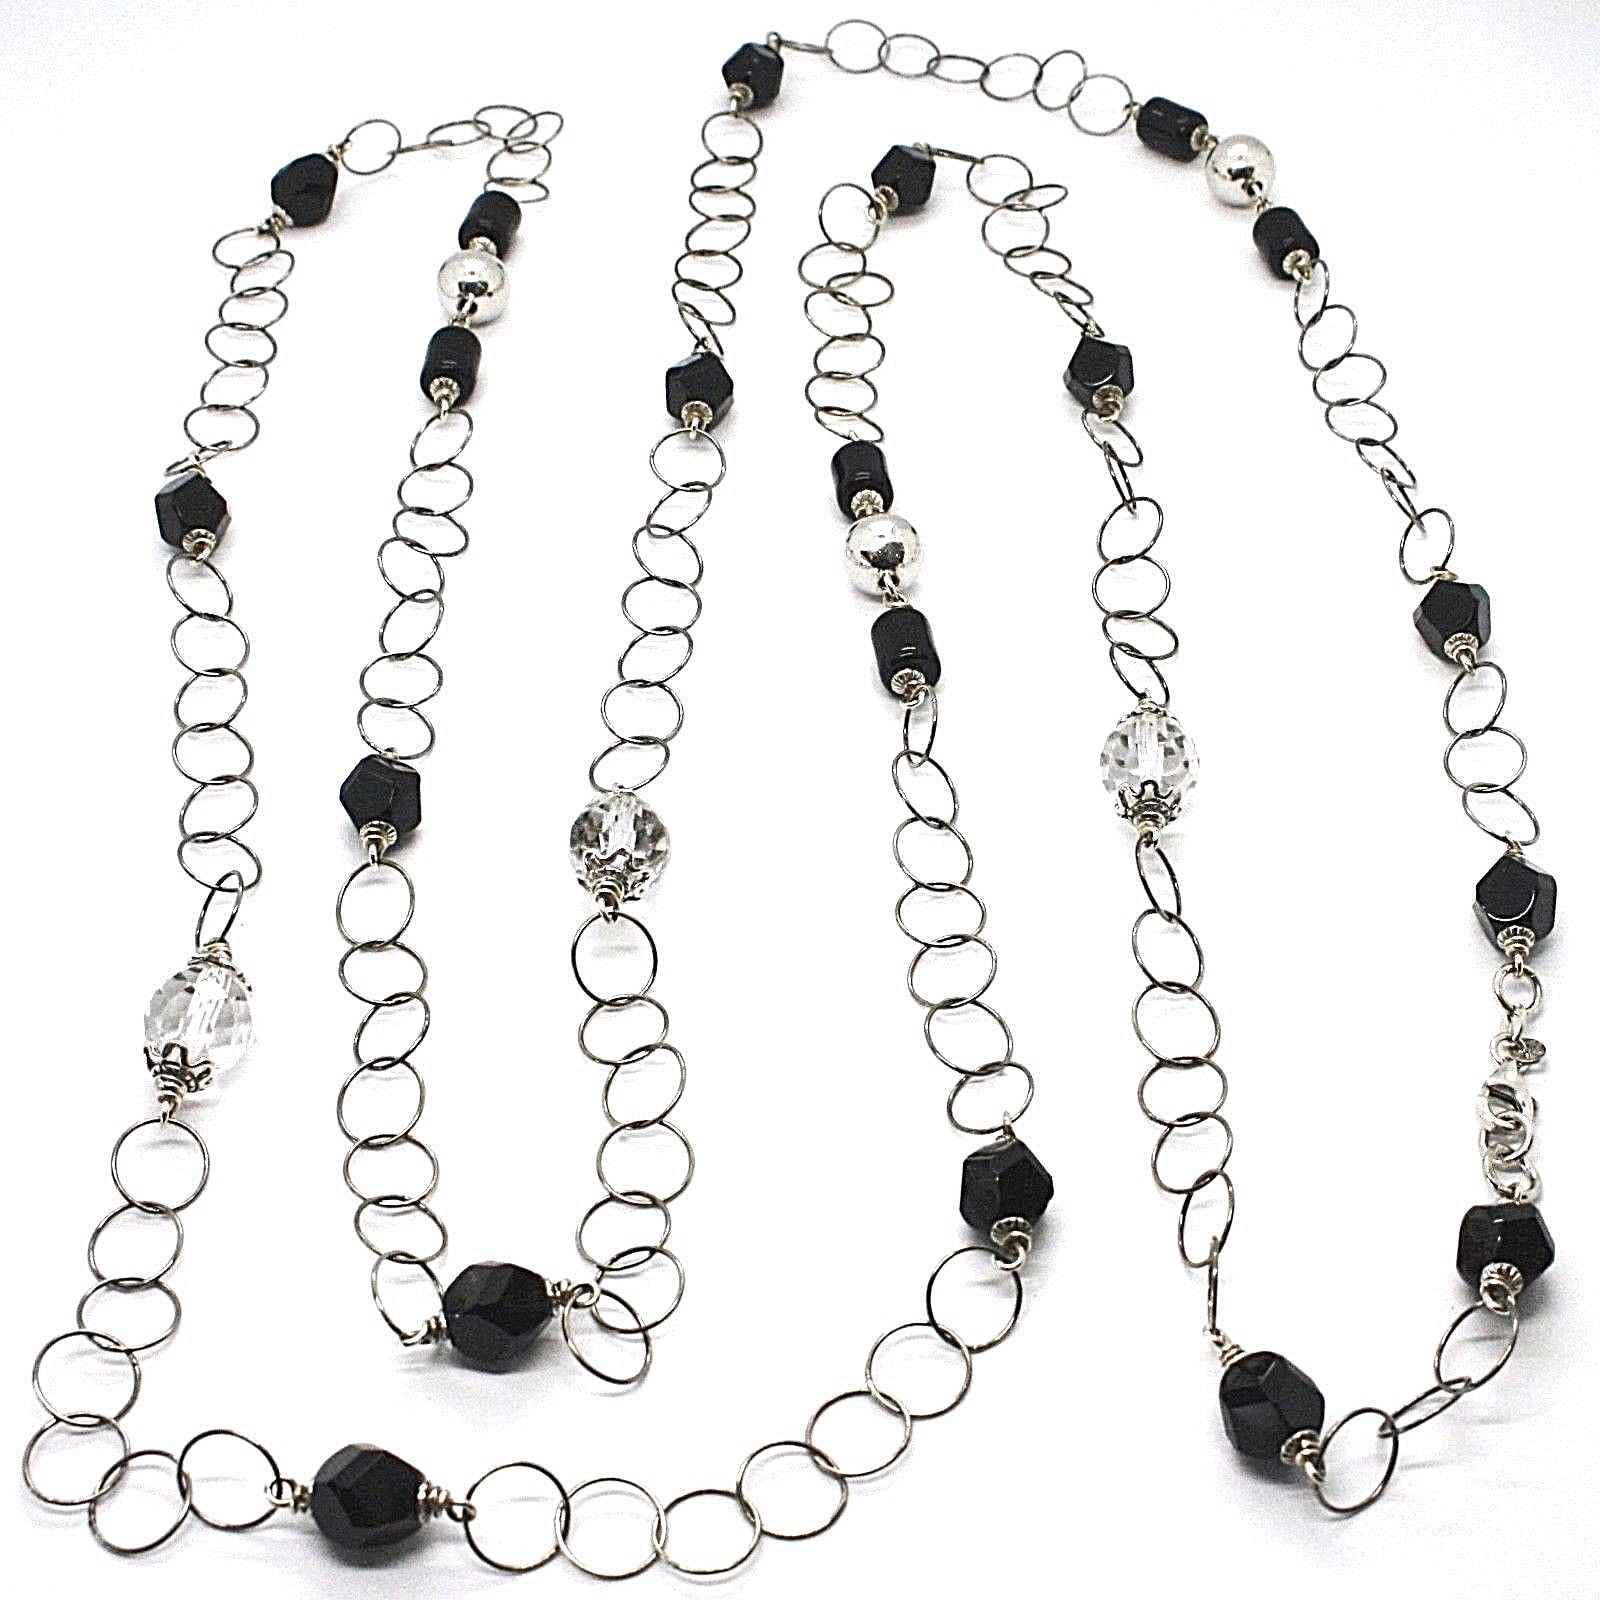 SILVER 925 NECKLACE, ONYX BLACK, LENGTH 63in, CHAIN ROLO', CIRCLES